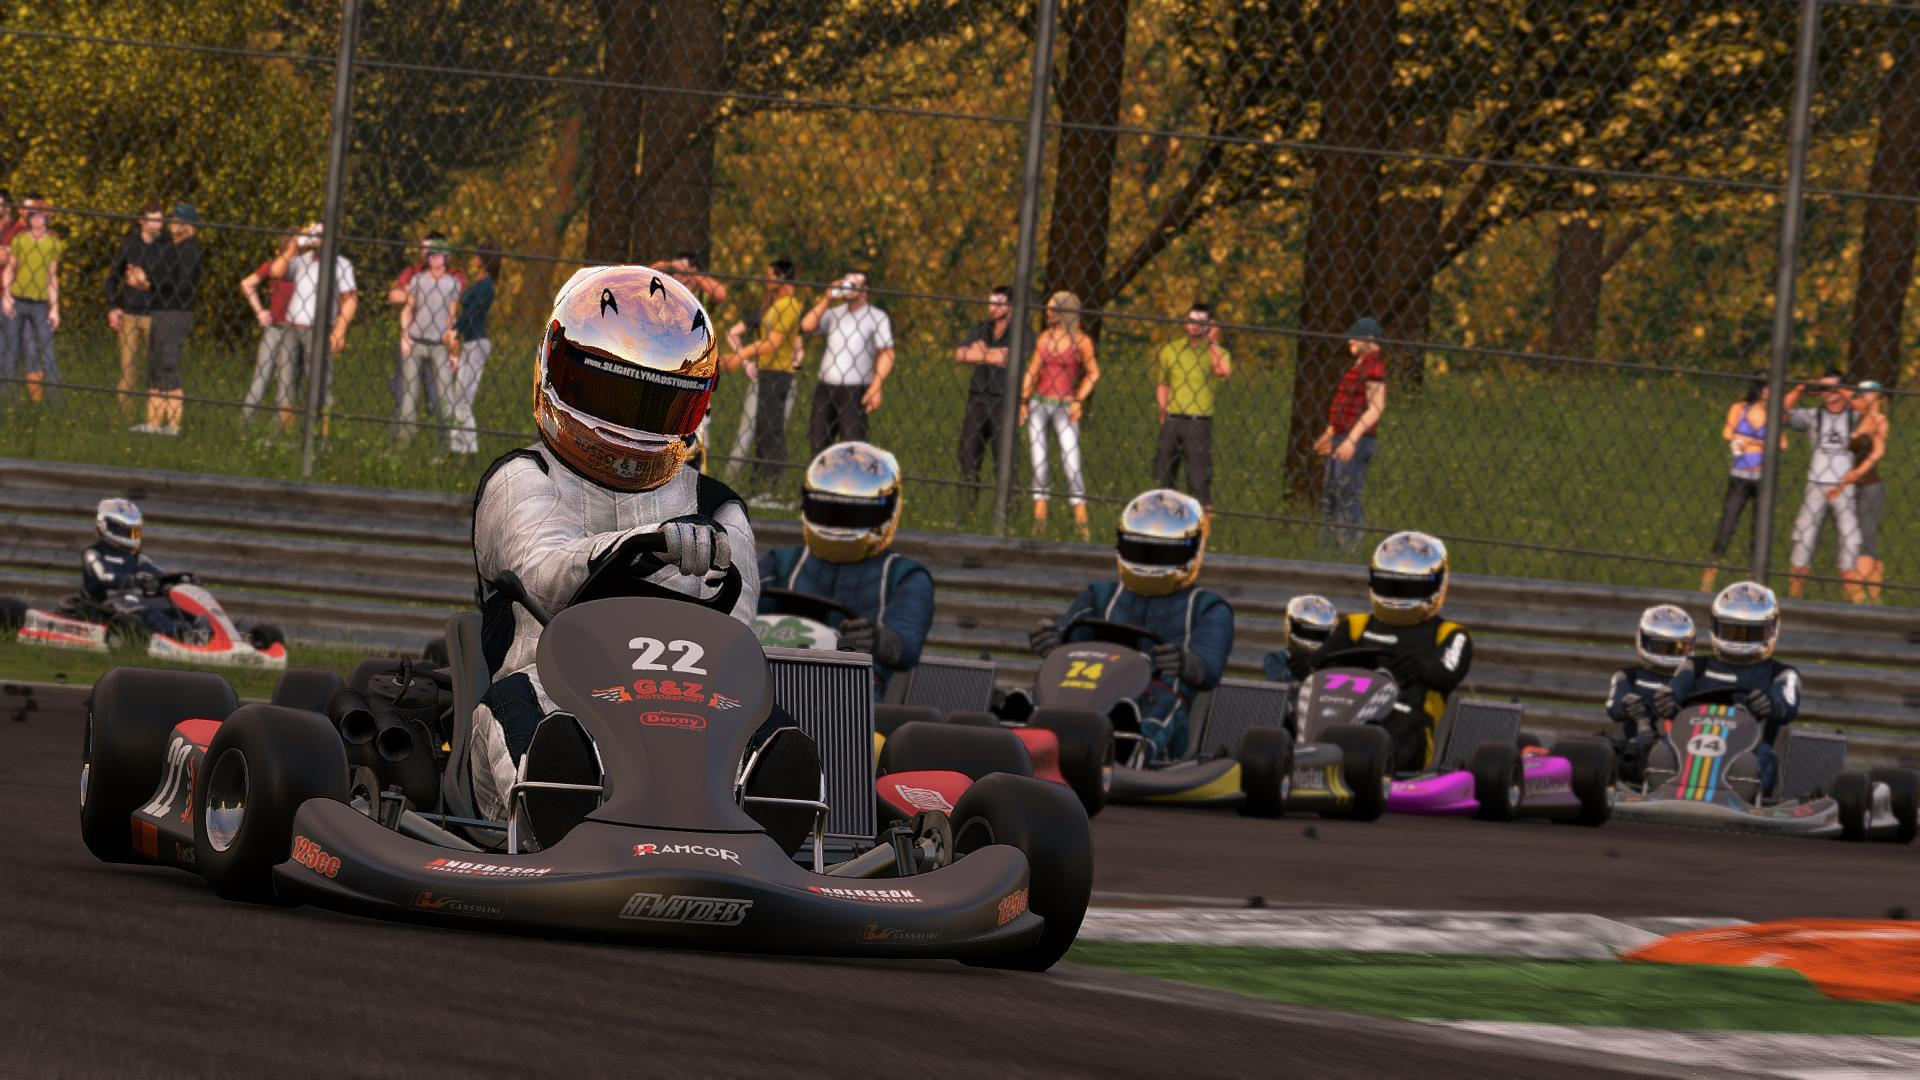 https://assets.vg247.com/current//2014/11/Karting_Screenshot_4_1415286191-Copy.jpg